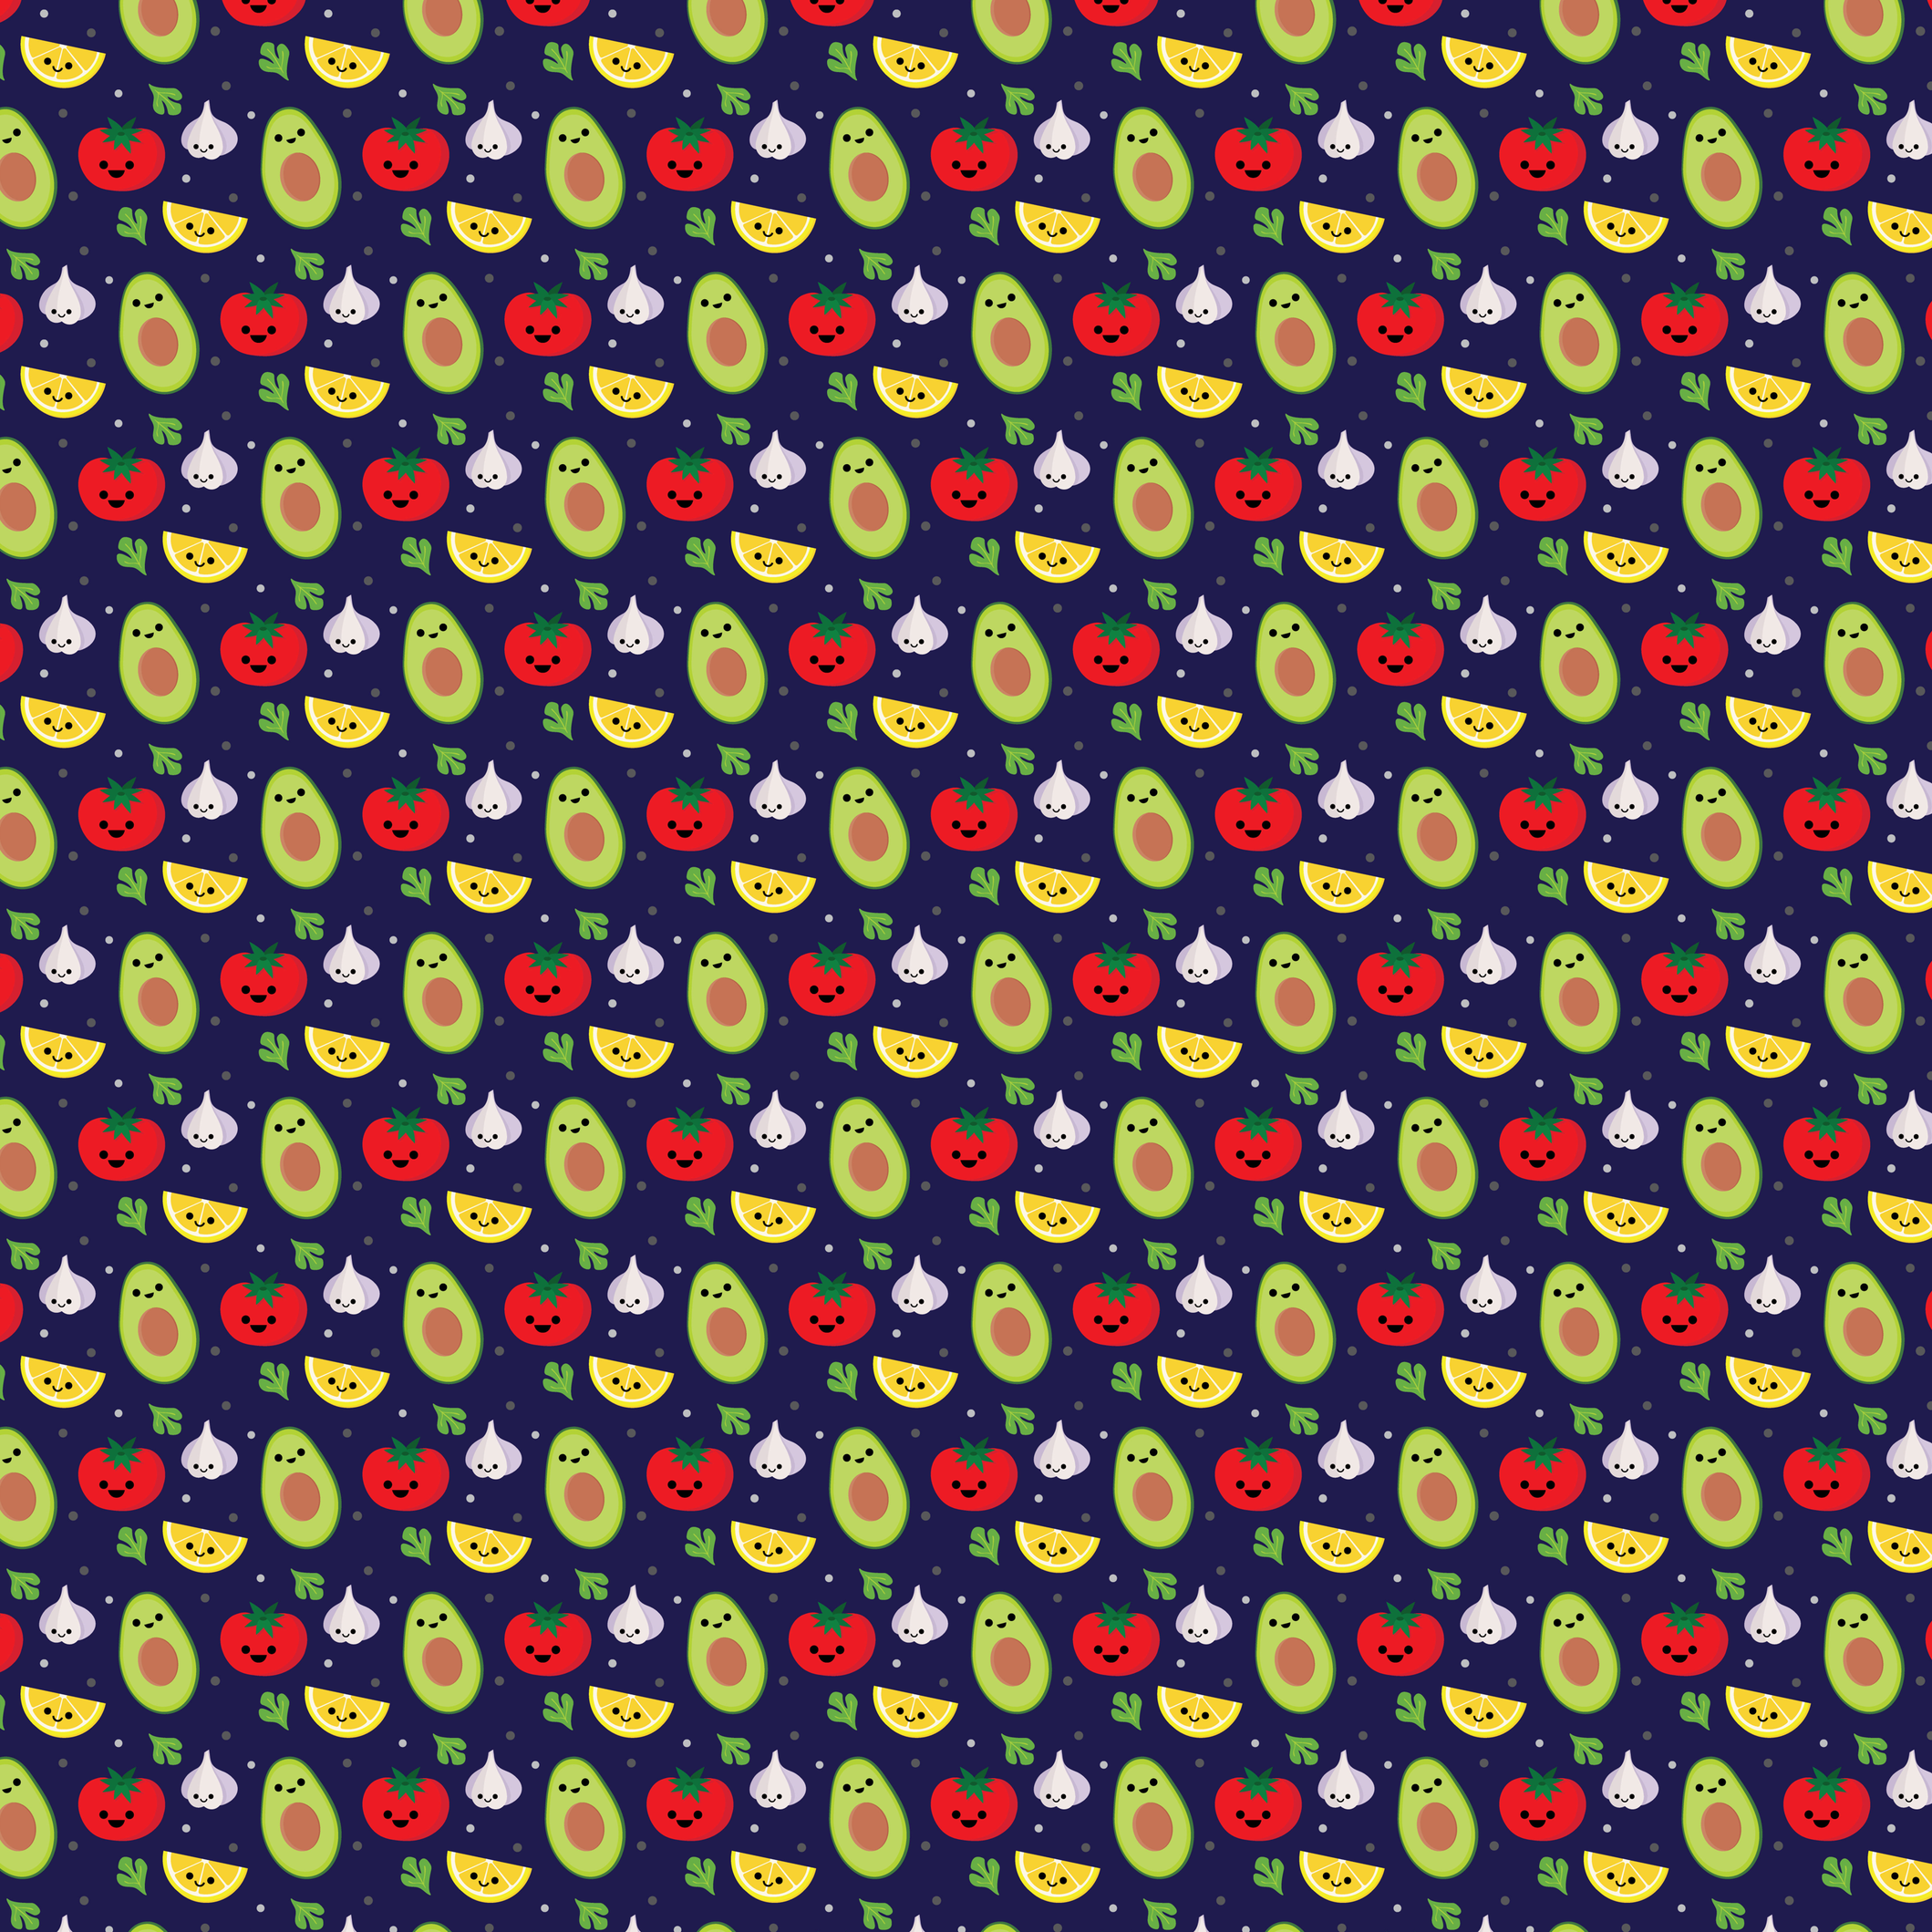 Guacamole! fabric by maidenskull on Spoonflower - custom fabric